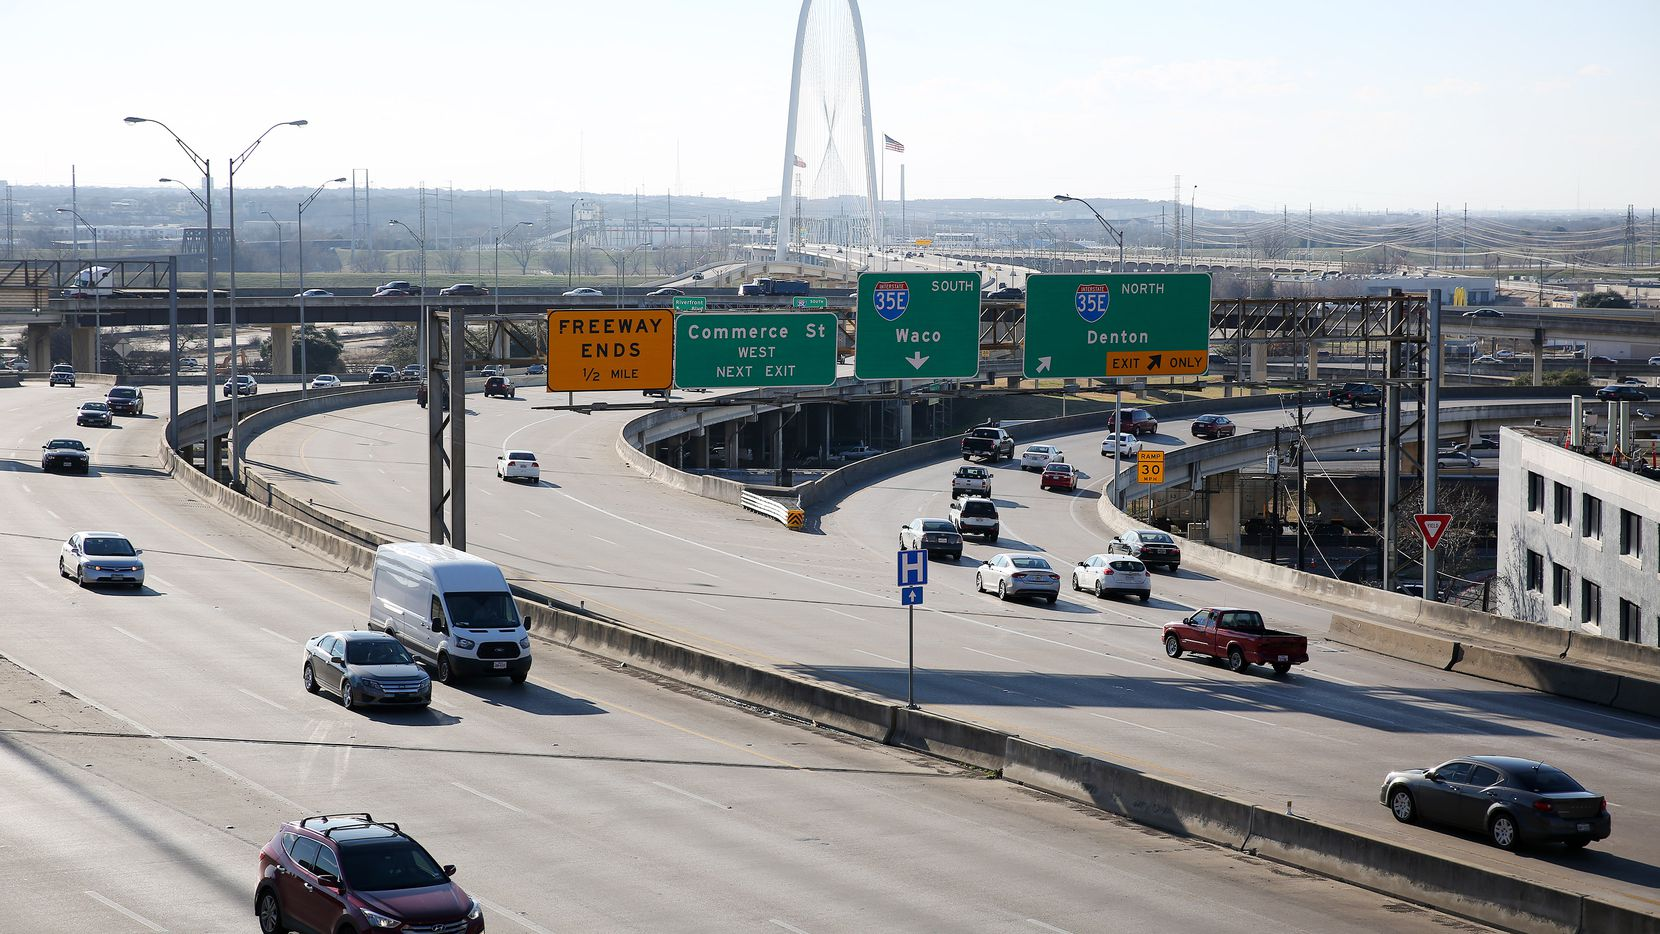 A crash in the southbound lanes of Interstate 35 at Regal Row has blocked the right two lanes, according to the Texas Department of Transporation.